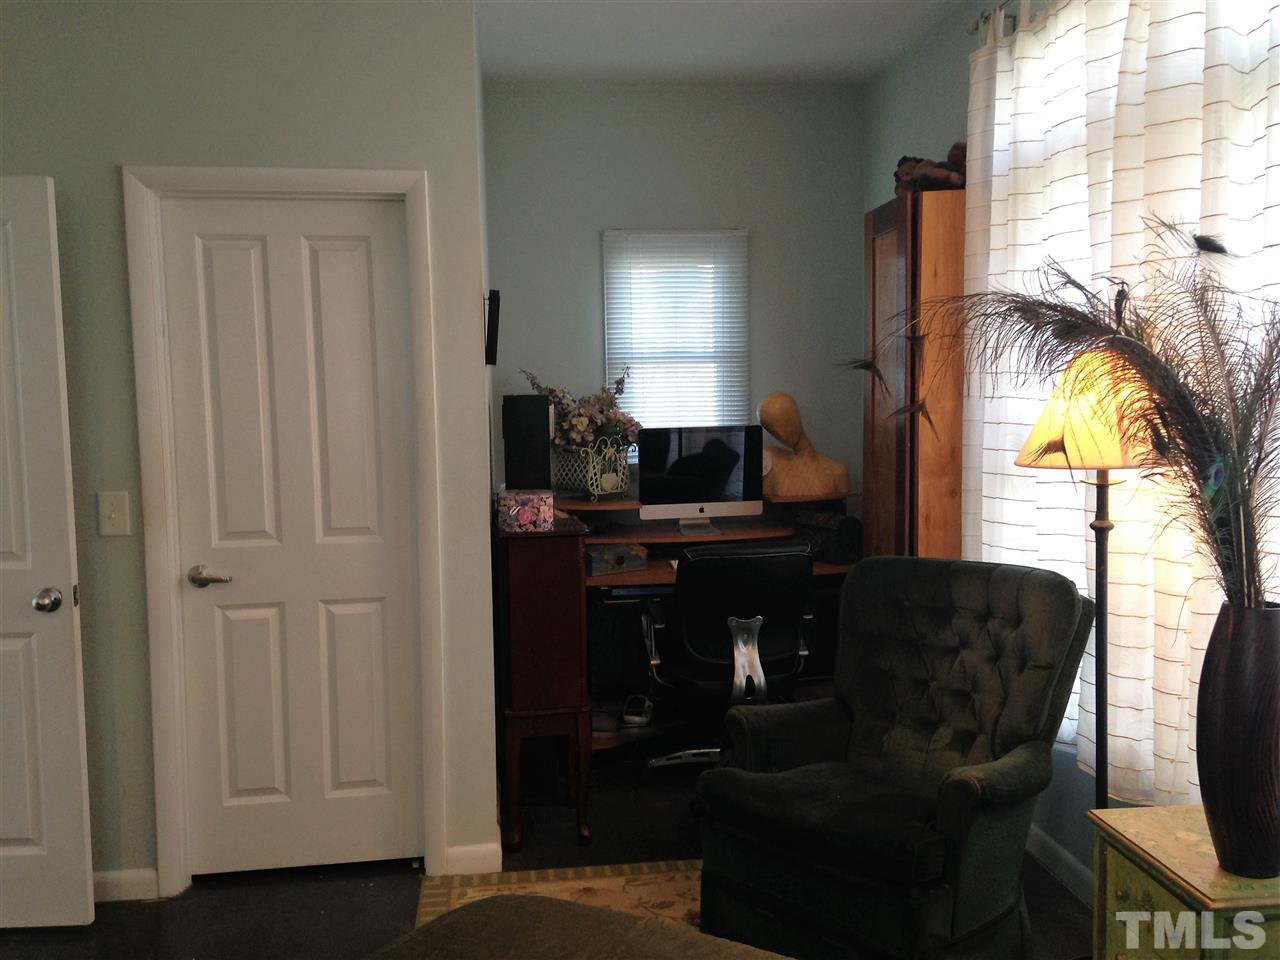 This is from the opposite side of the room facing the door.